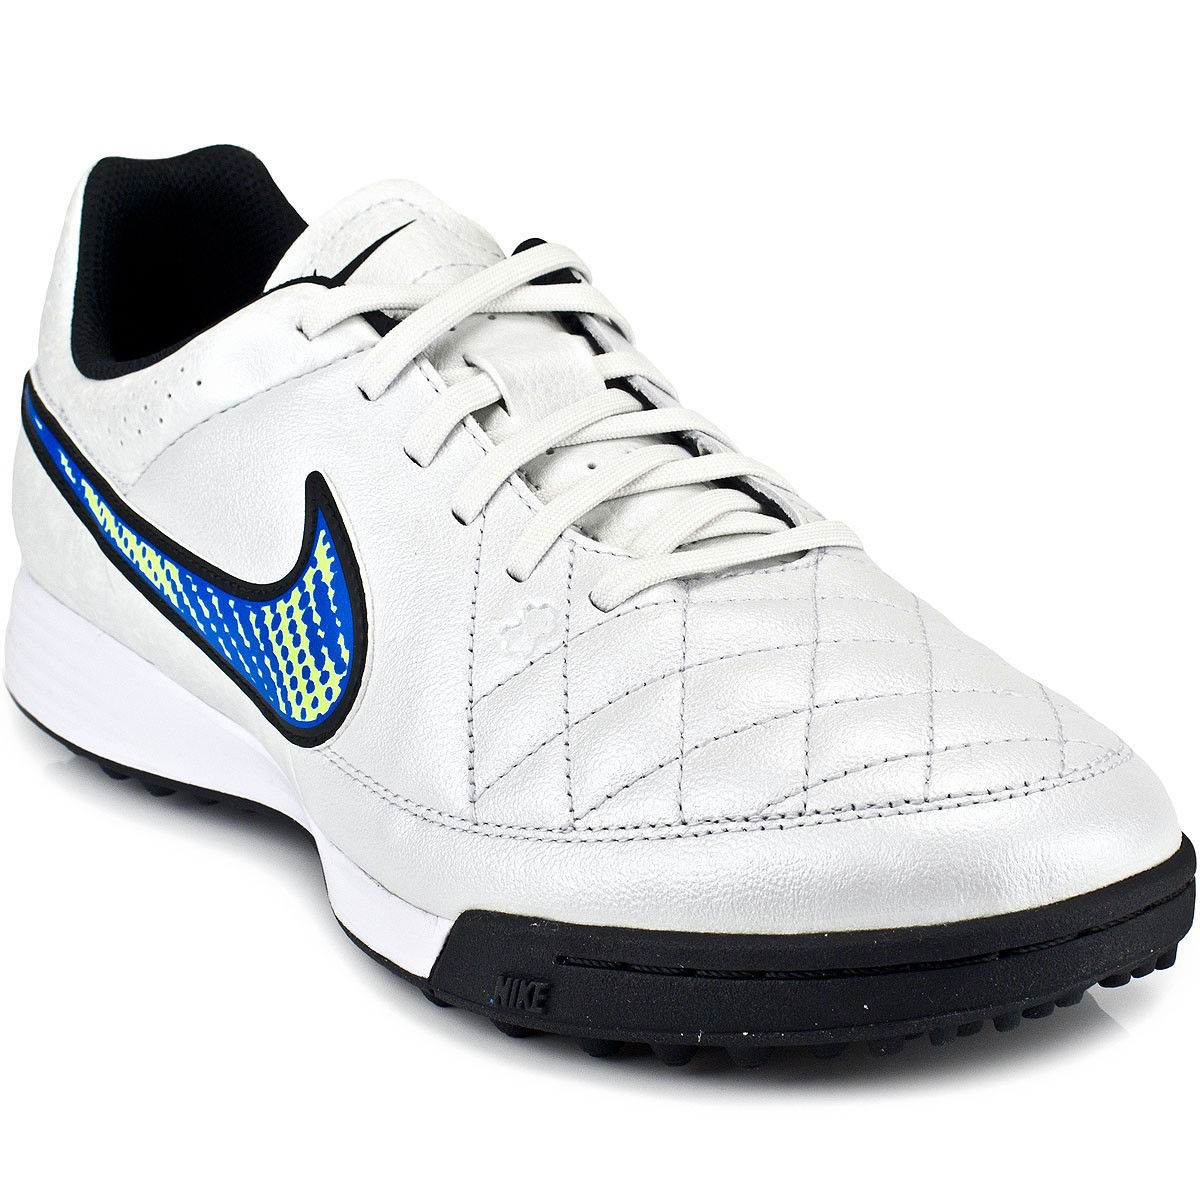 Chuteira Nike Tiempo Genio Leather TF 631284 fac53f302d789